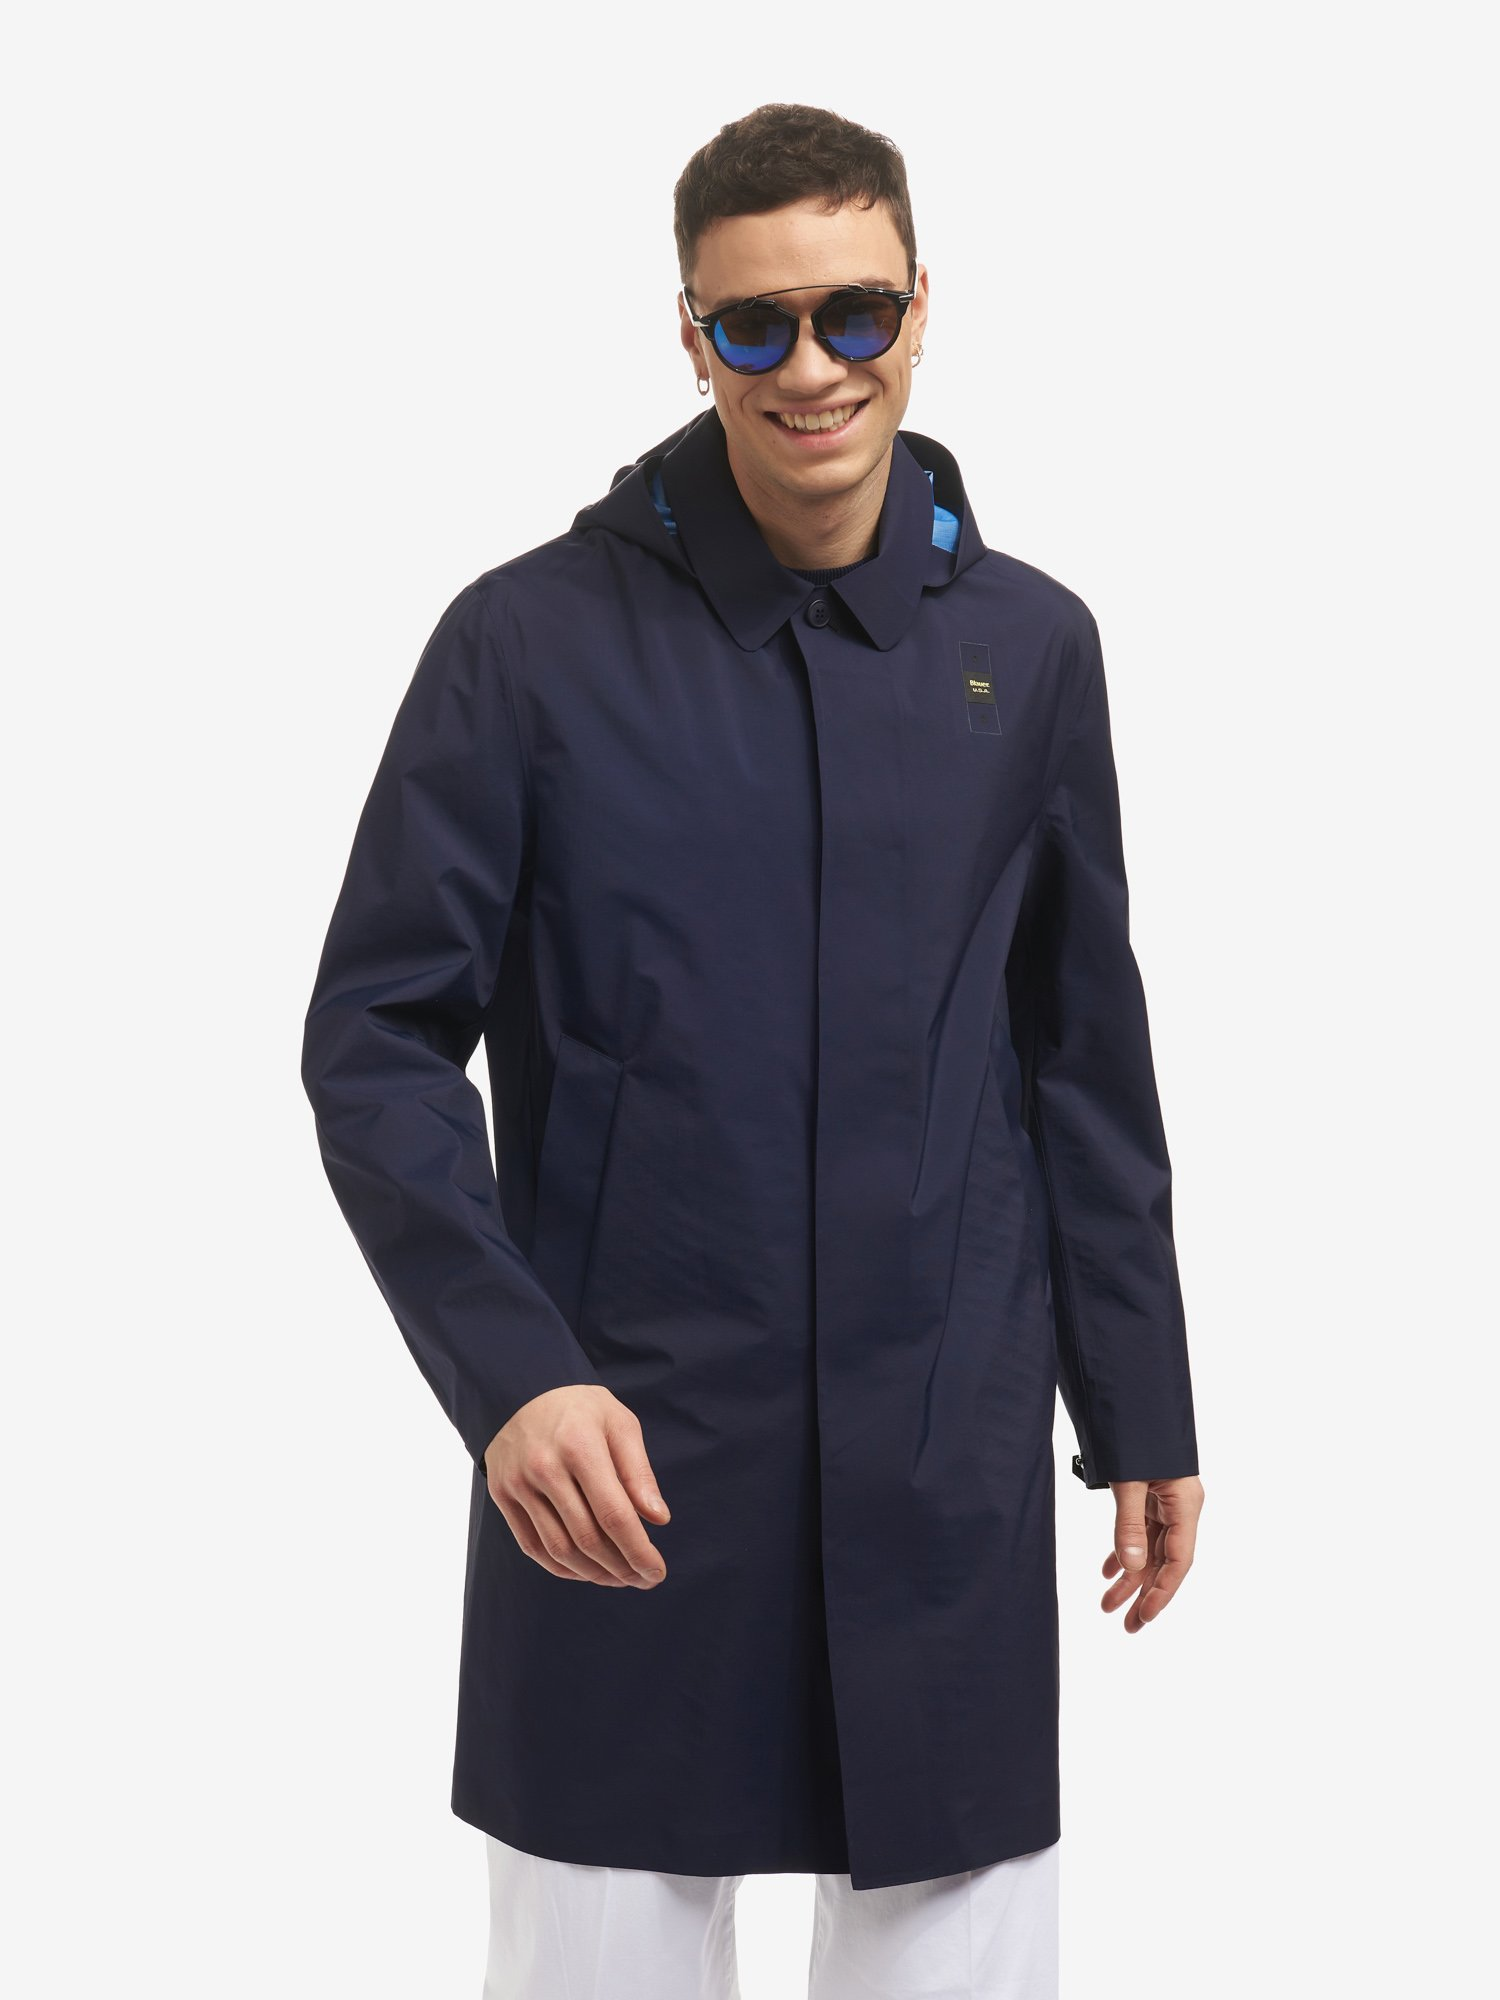 TRENCH UOMO IN MICRO-RIP JIM - Blauer